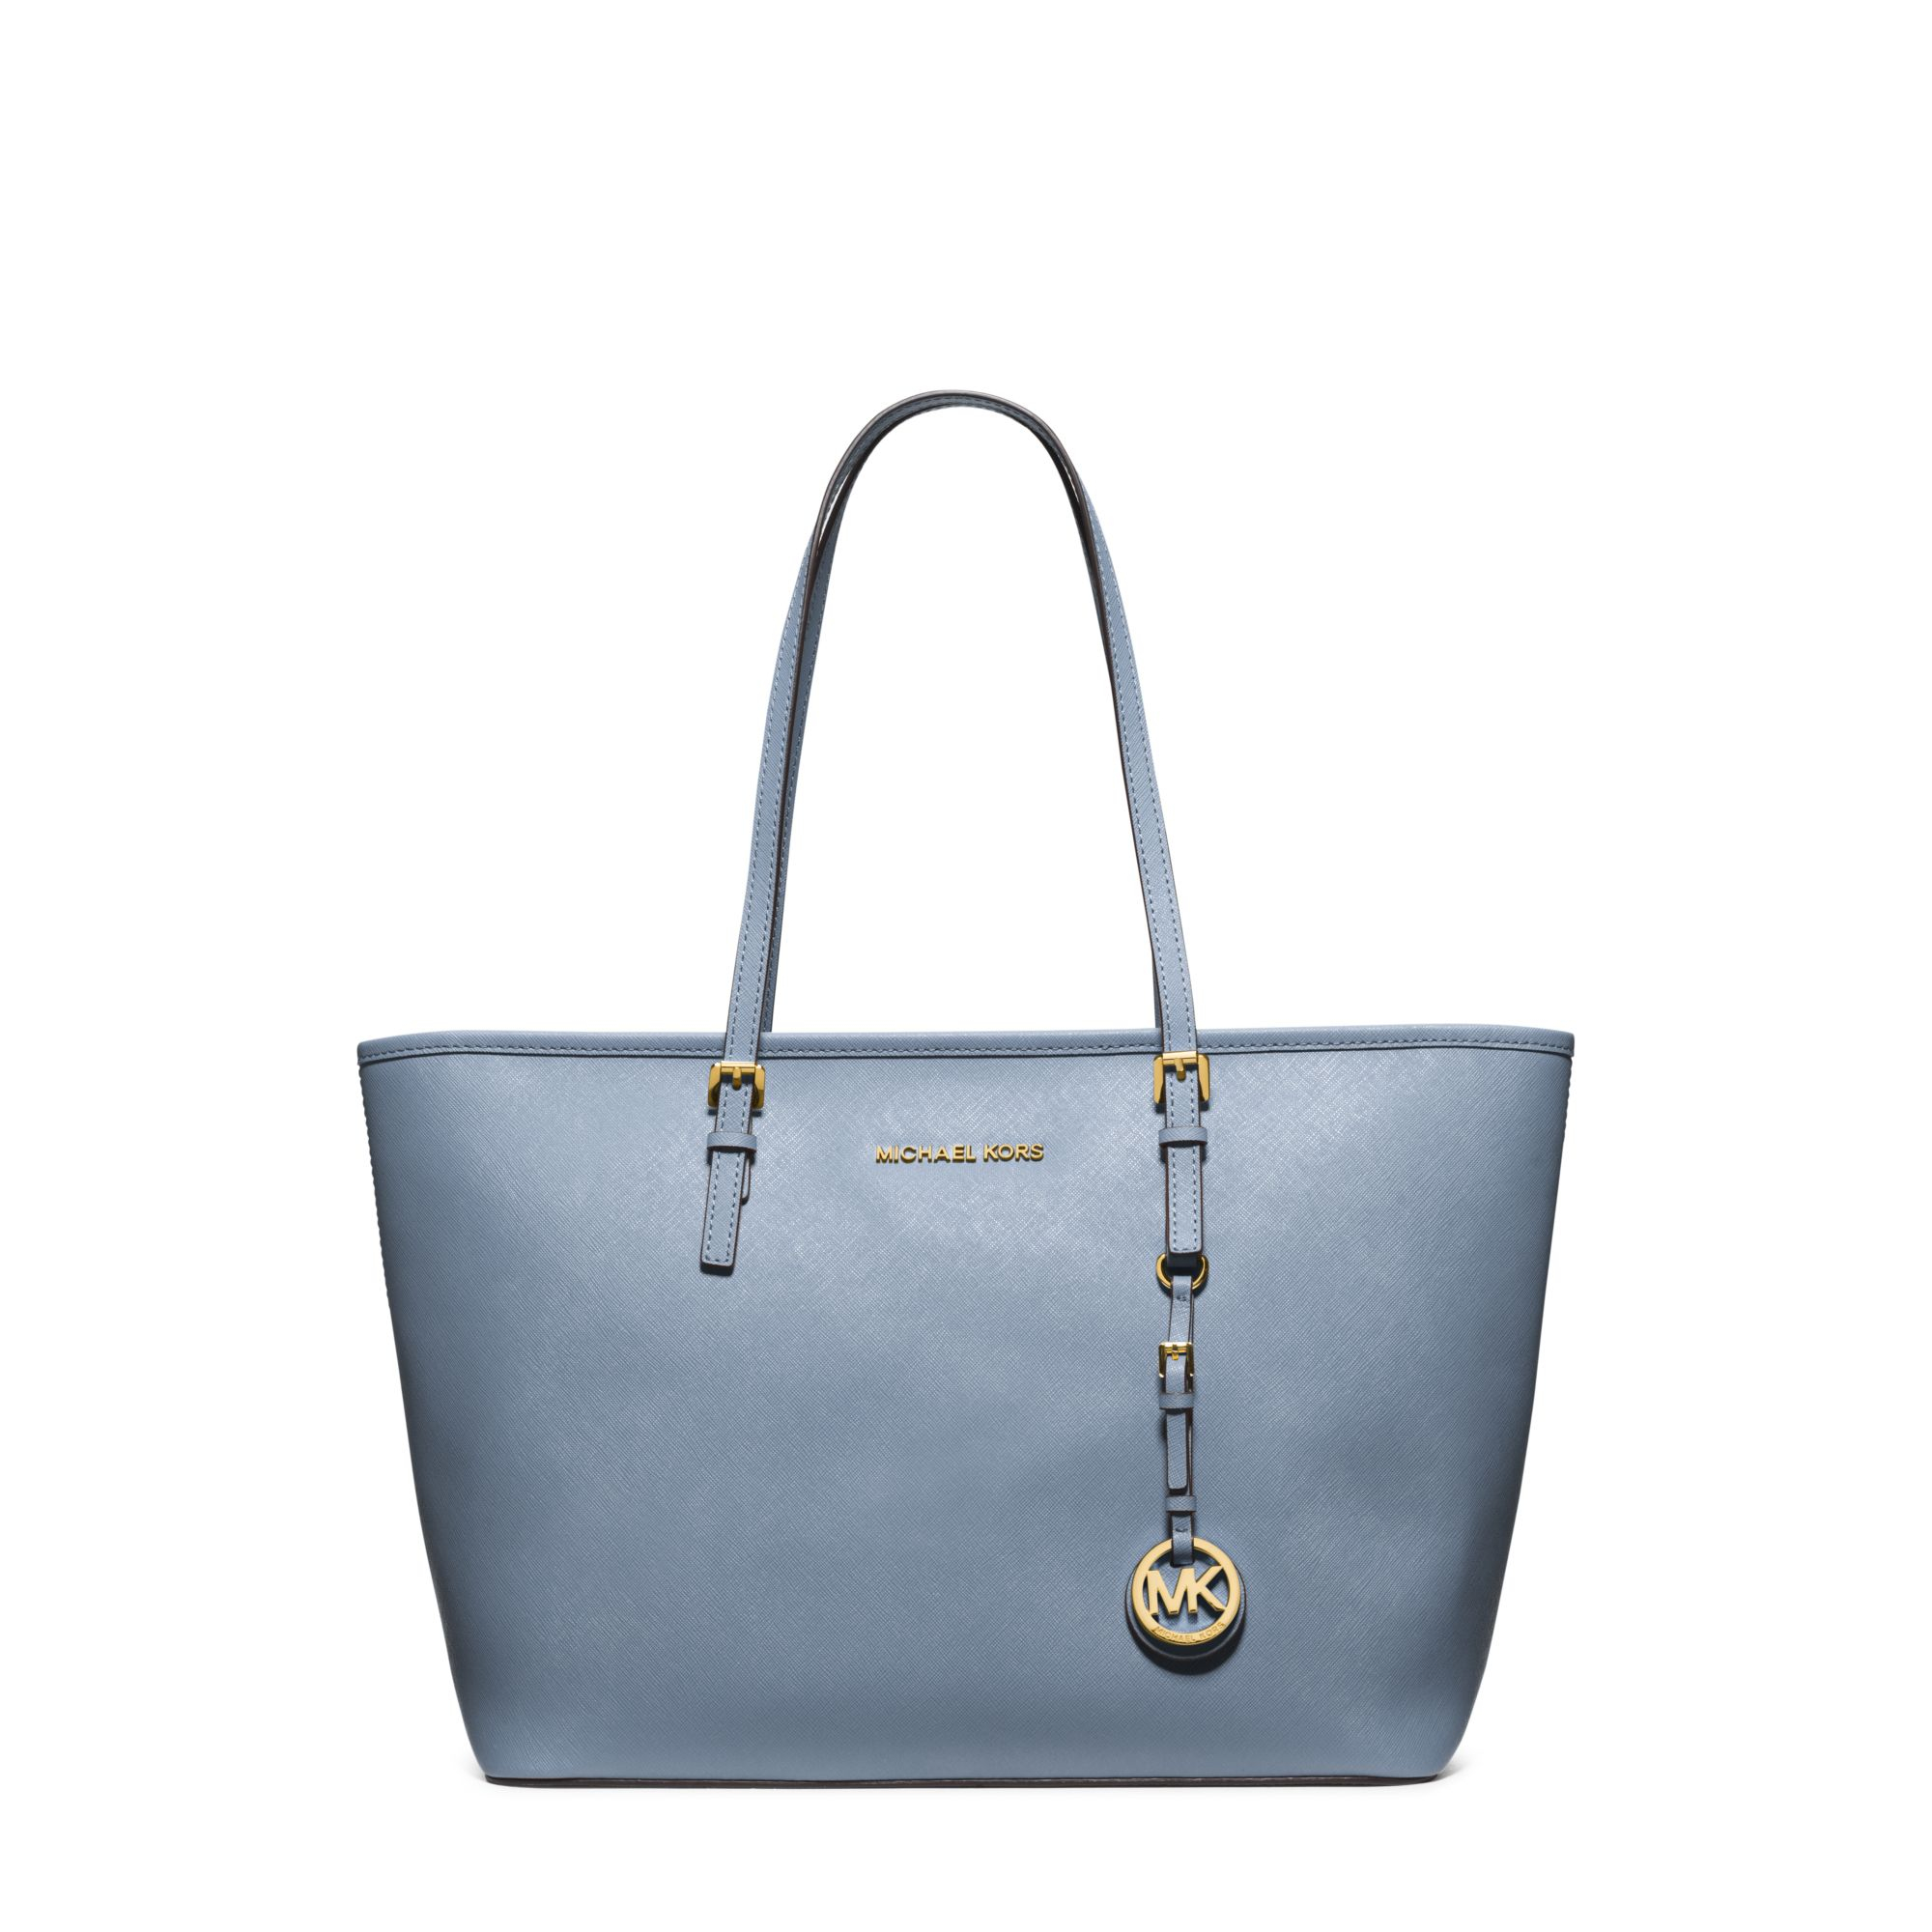 b49a11c85a Lyst - Michael Kors Jet Set Travel Saffiano Leather Top-zip Tote in Blue